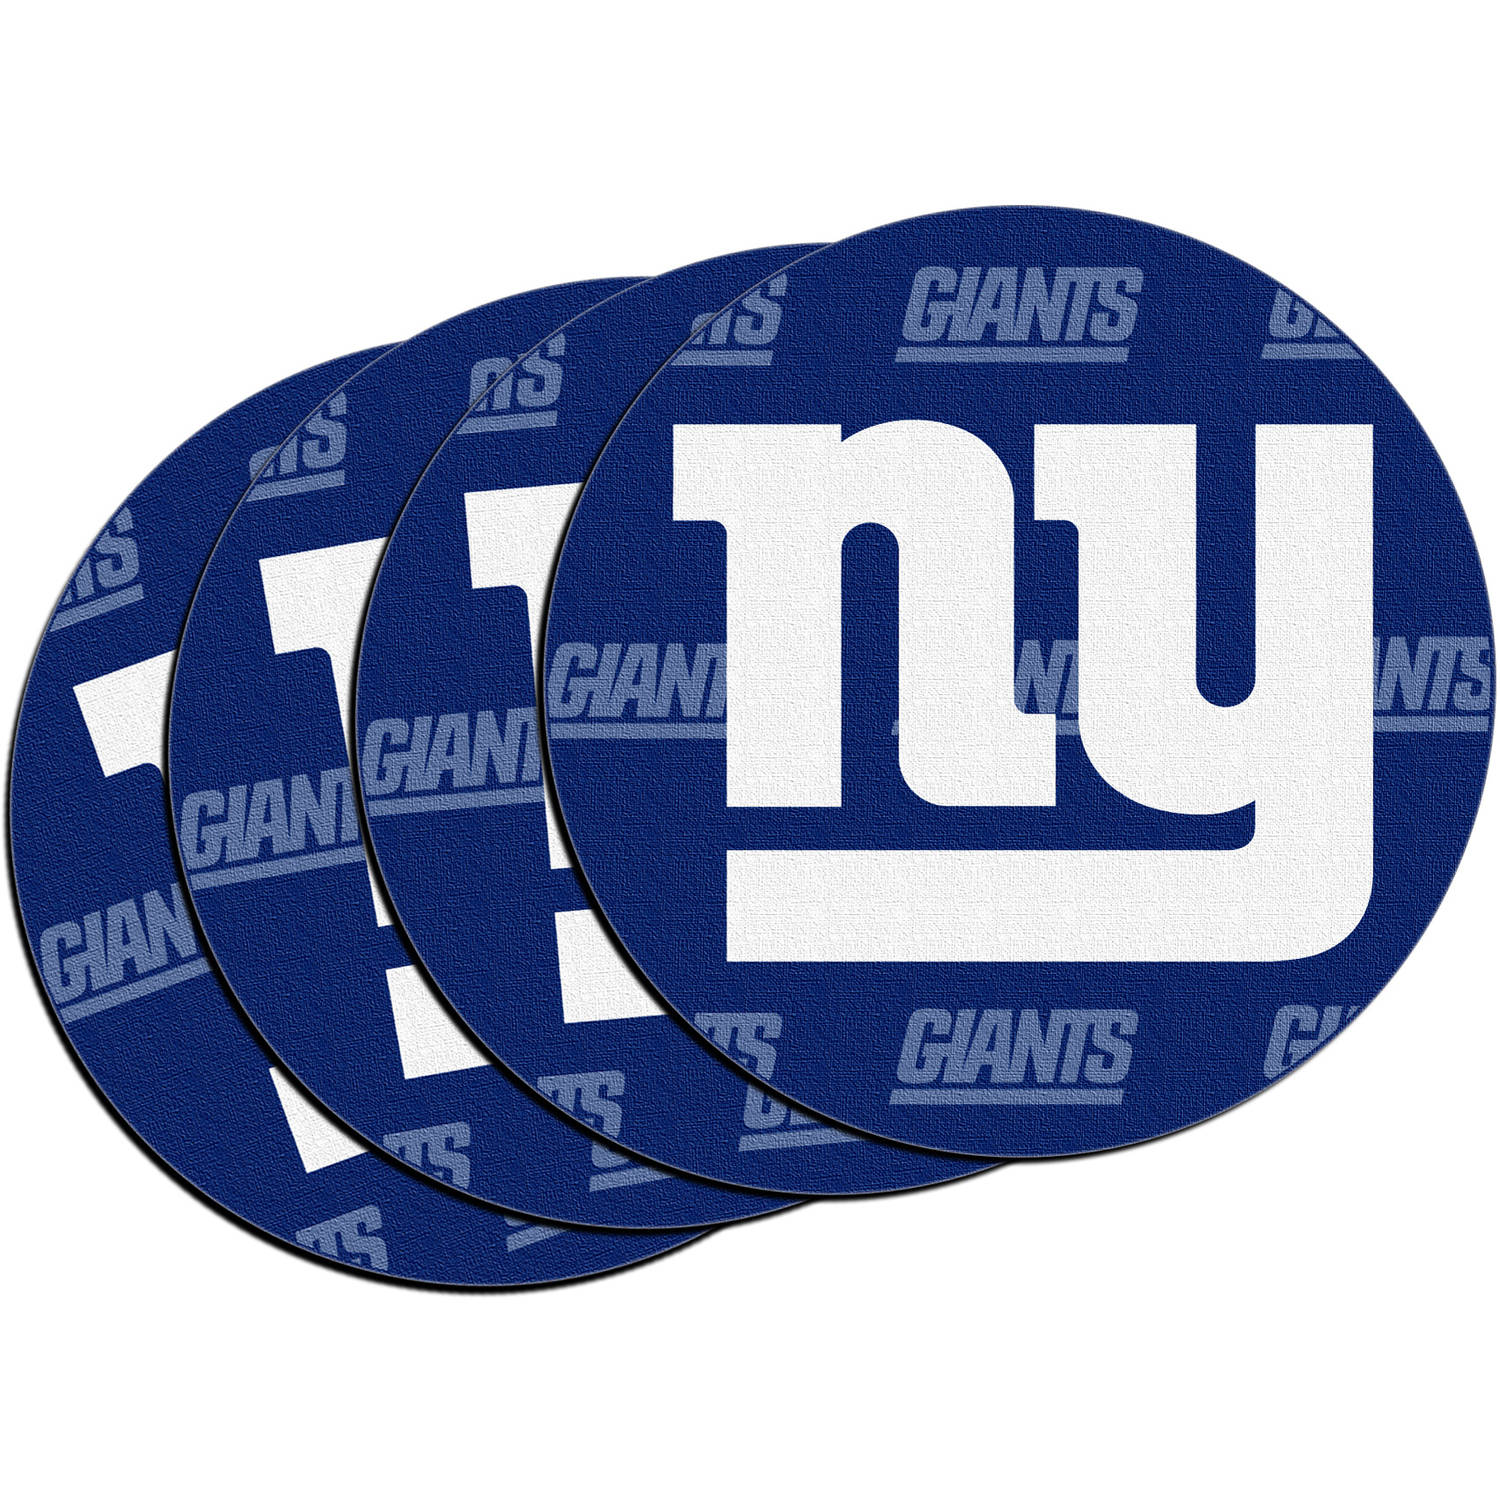 New York Giants Car Coasters Price Compare